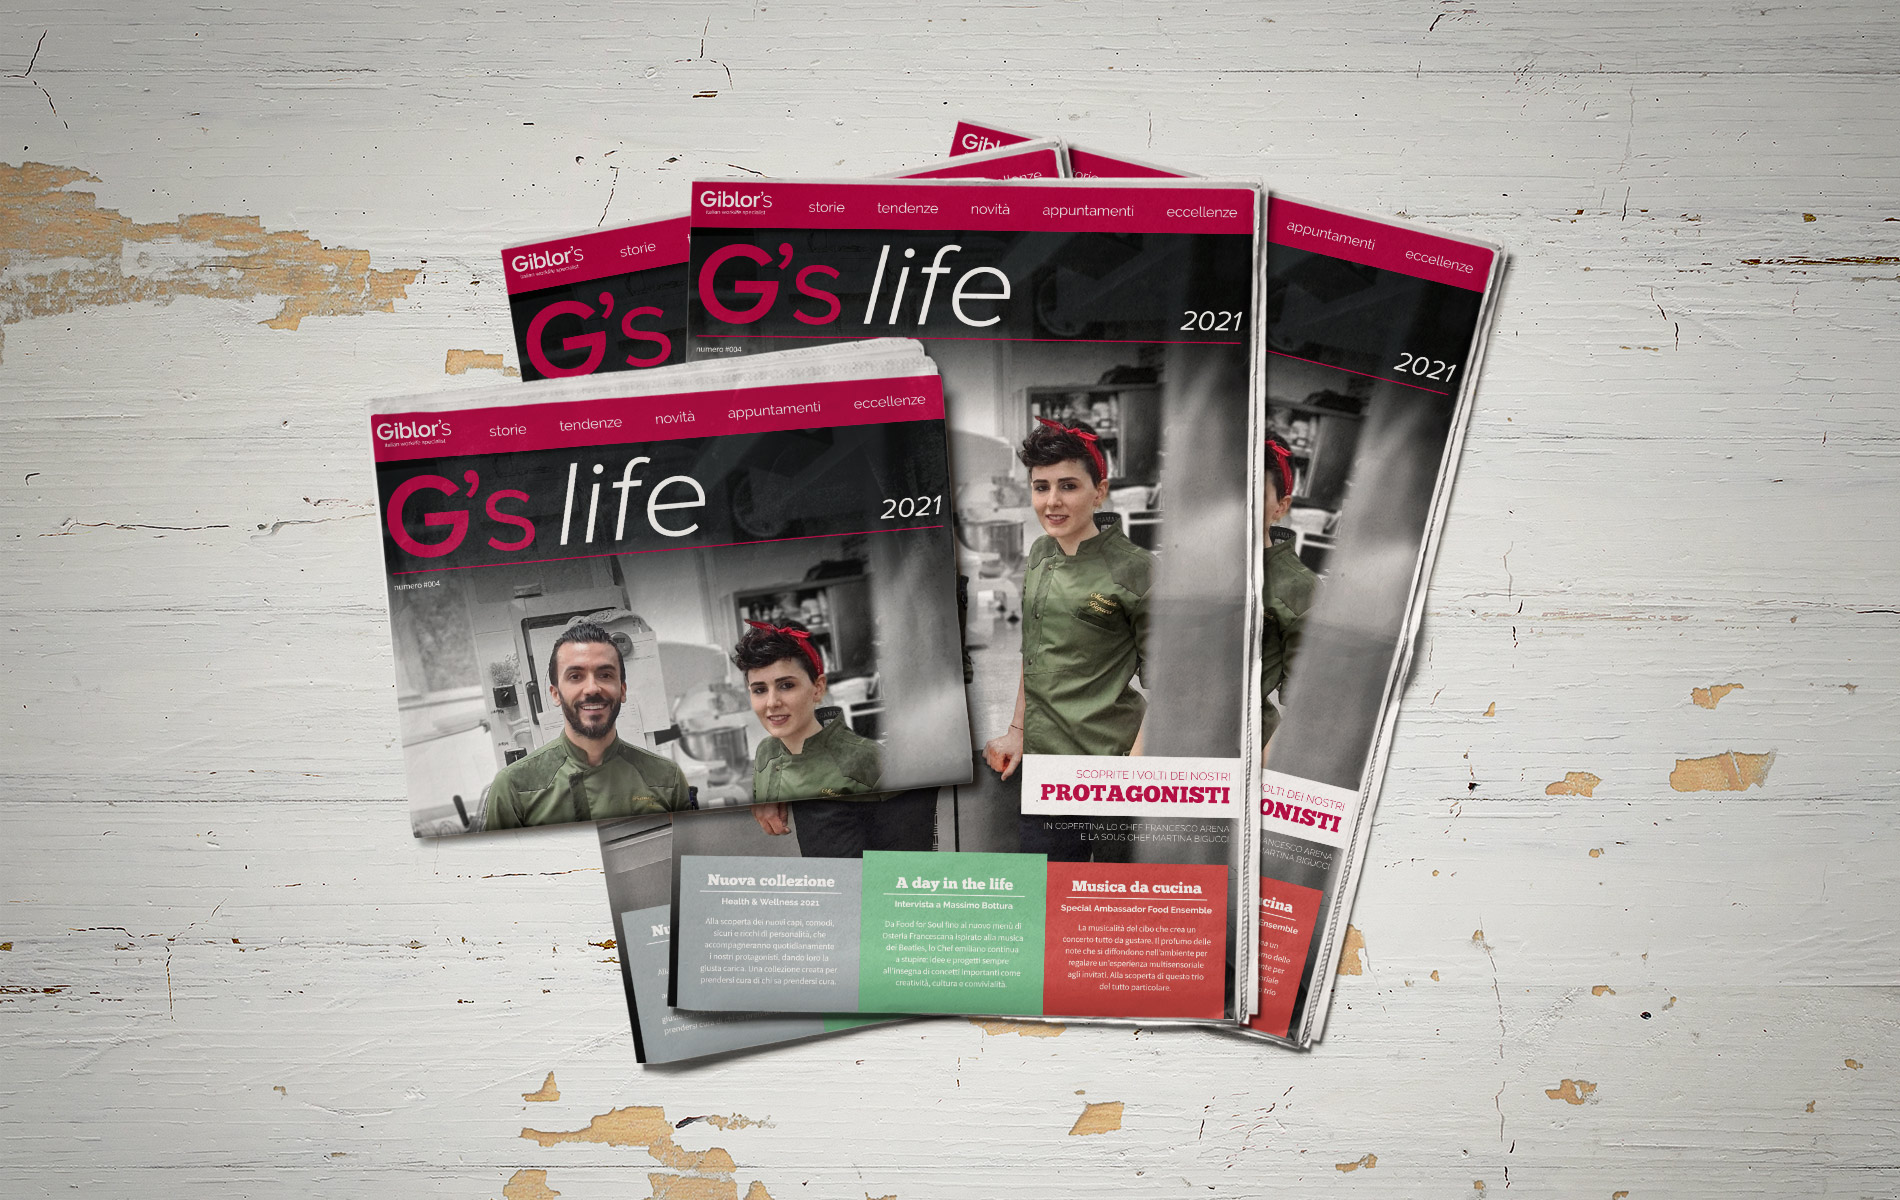 Giblor's - G's life 2021 cover